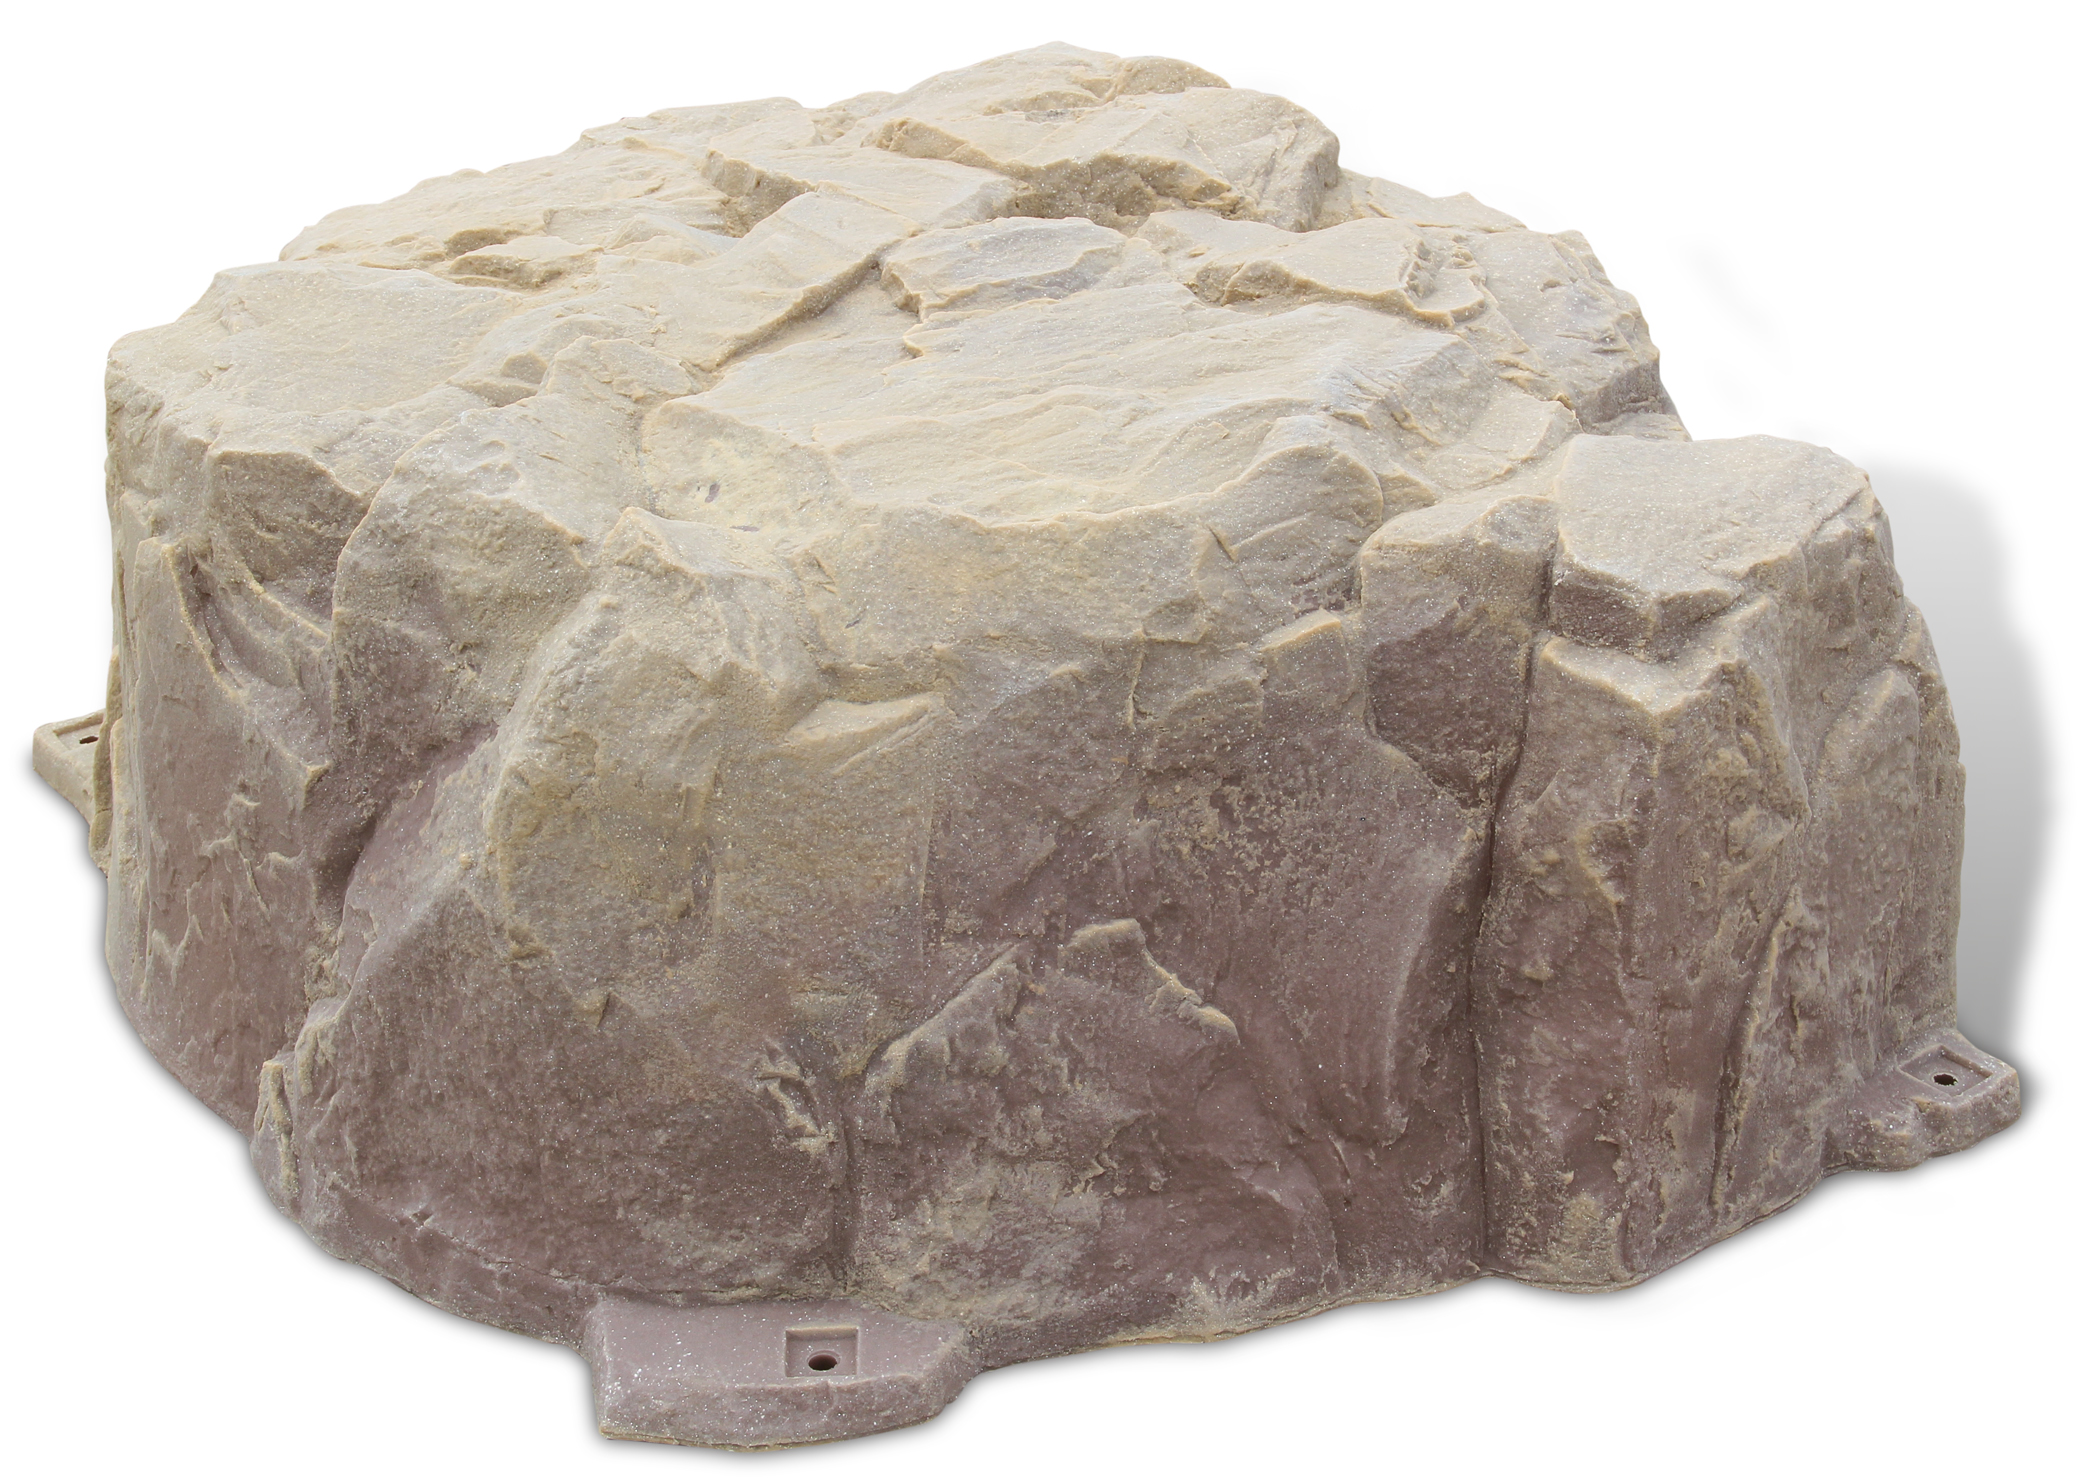 Fake Rock Septic Cover Model Sandstone Image 546